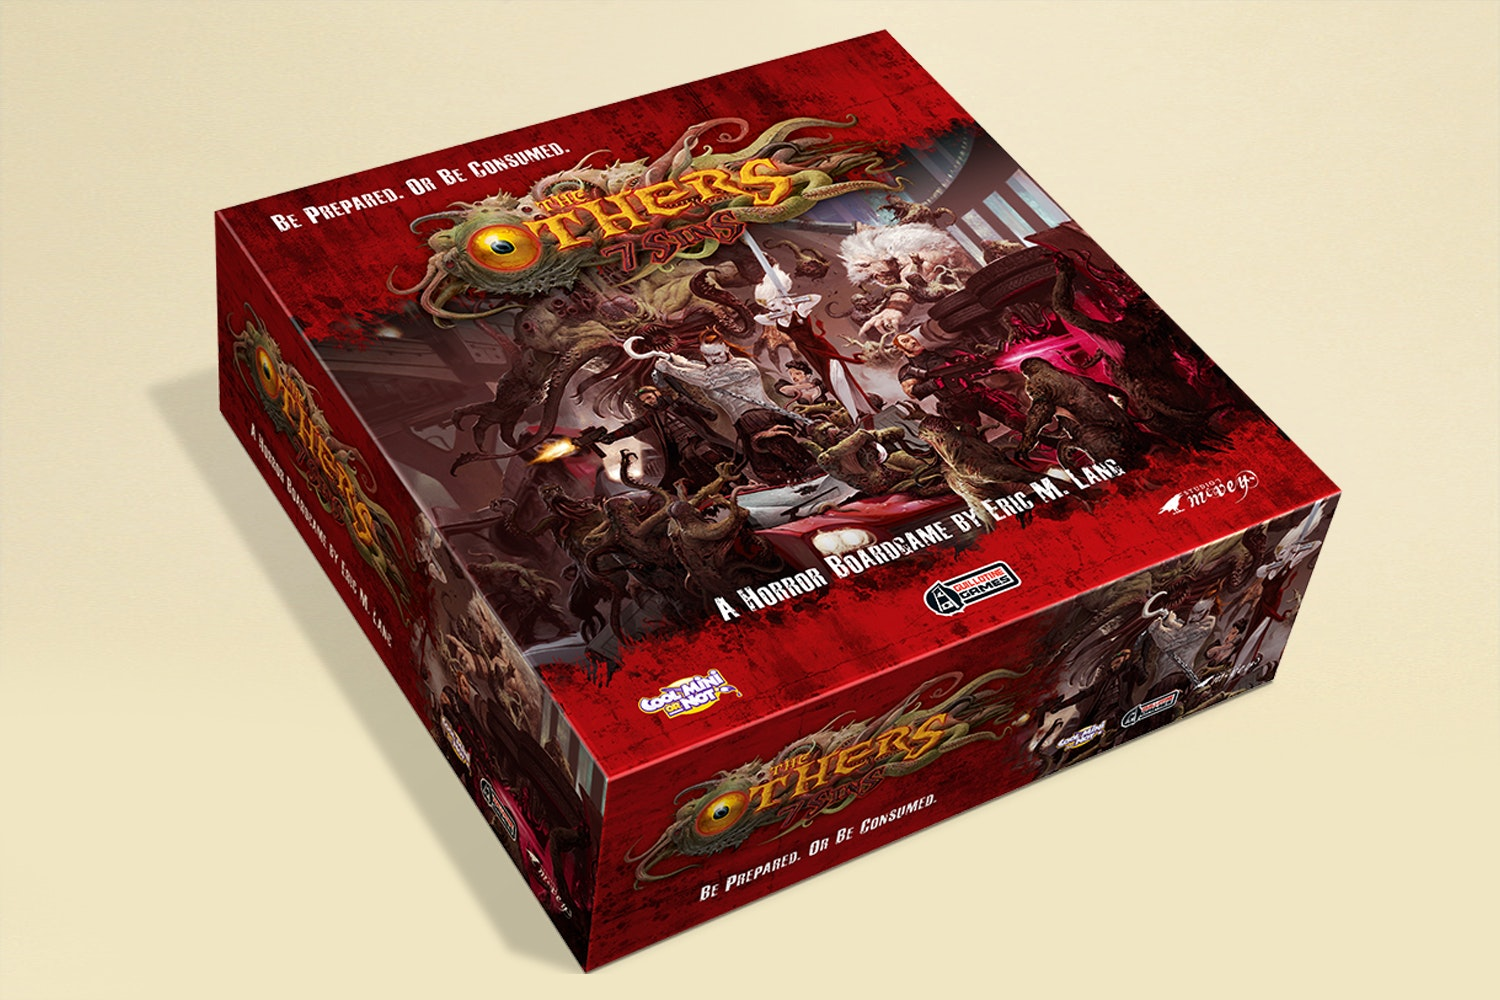 The Others: 7 Sins Base Game & Expansions Pre-Order